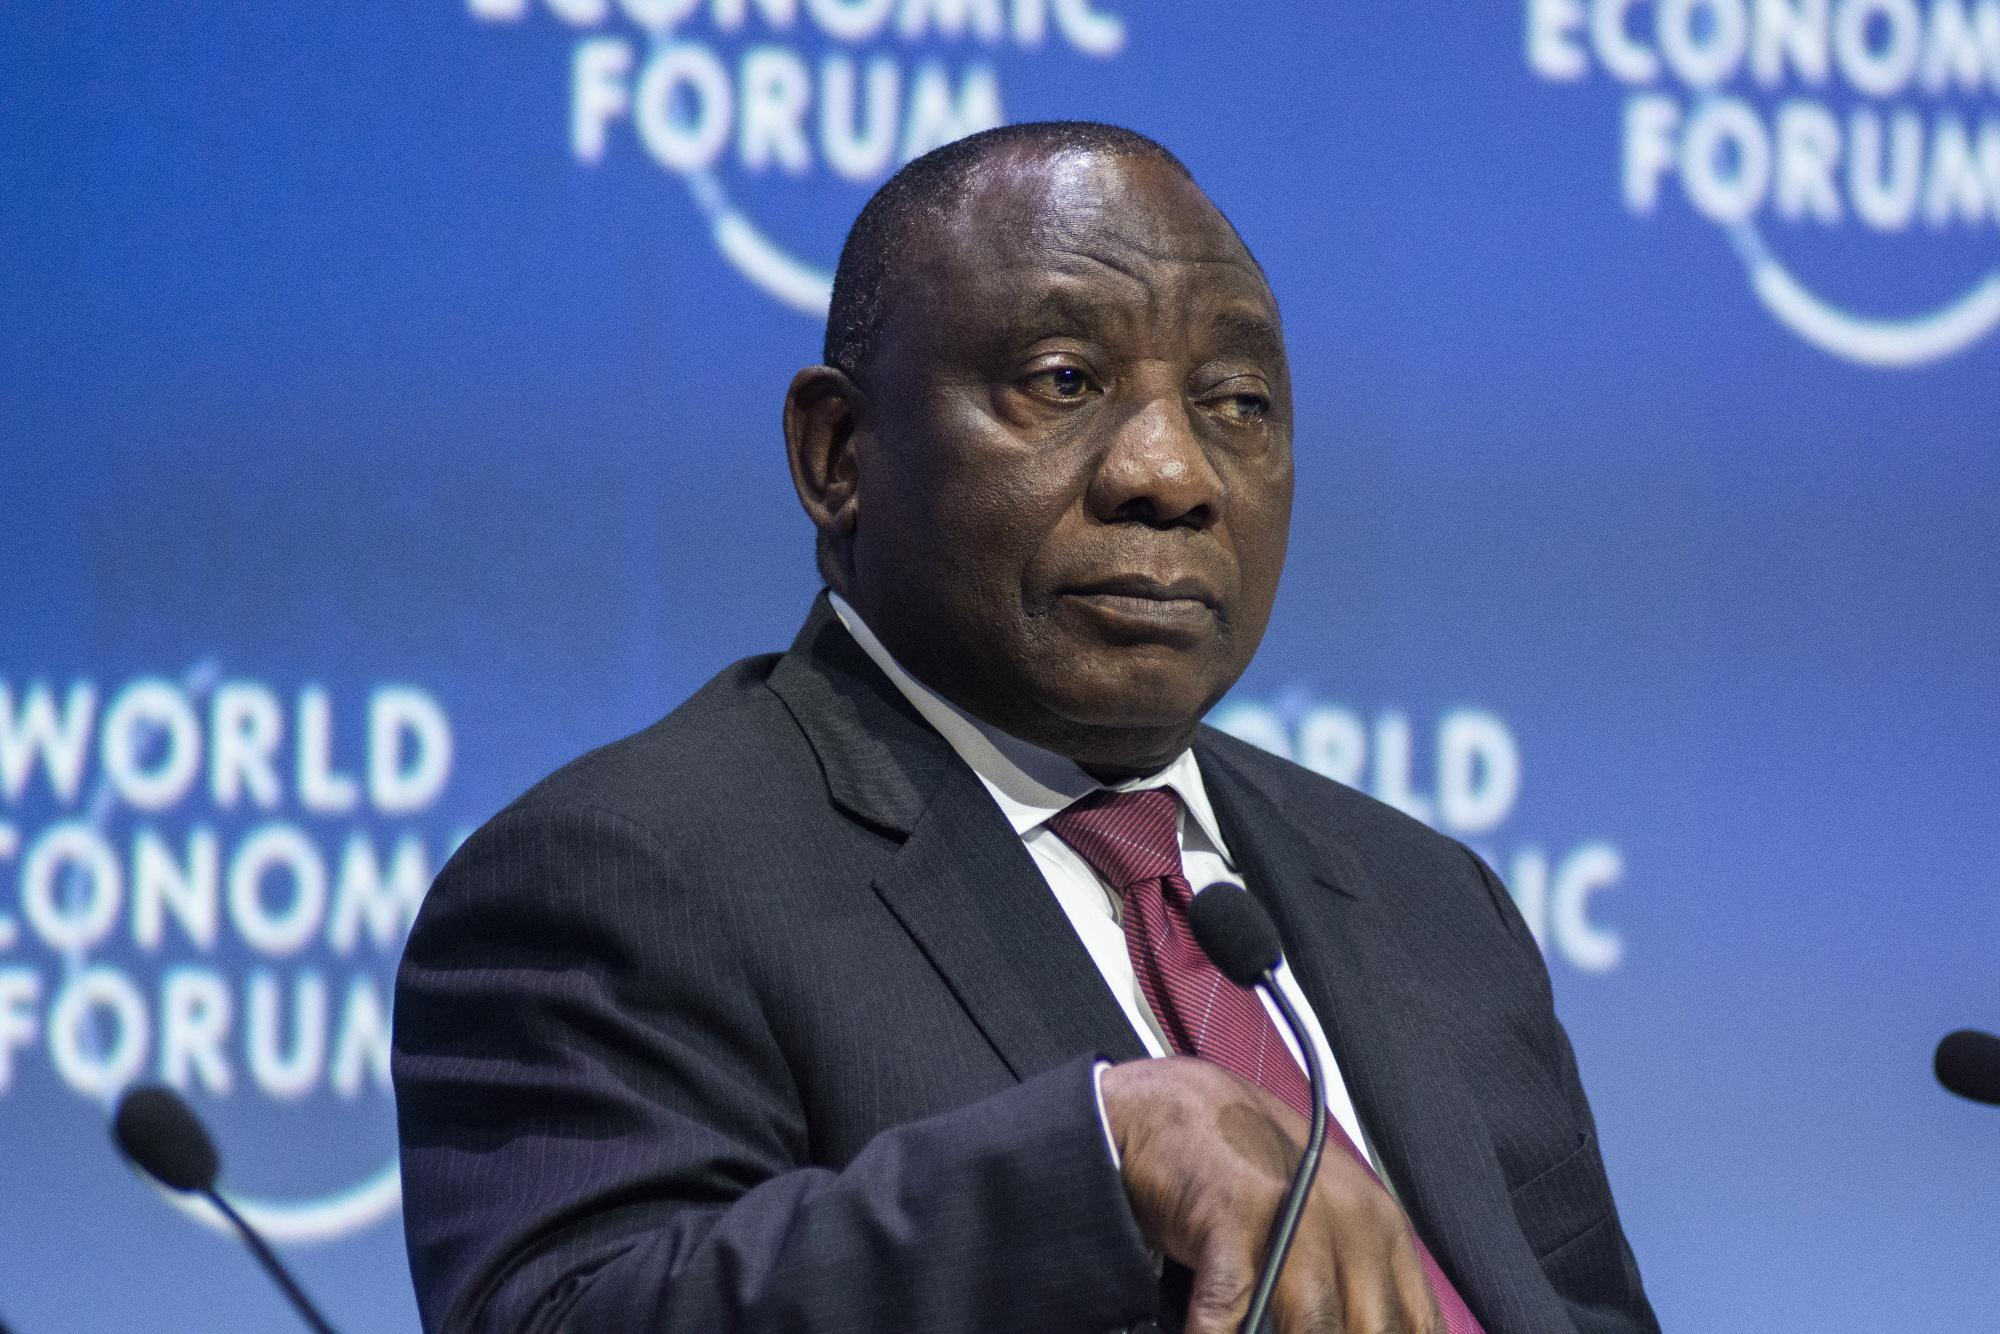 South Africa, Nigeria Leaders Meet After Anti-Immigrant Violence